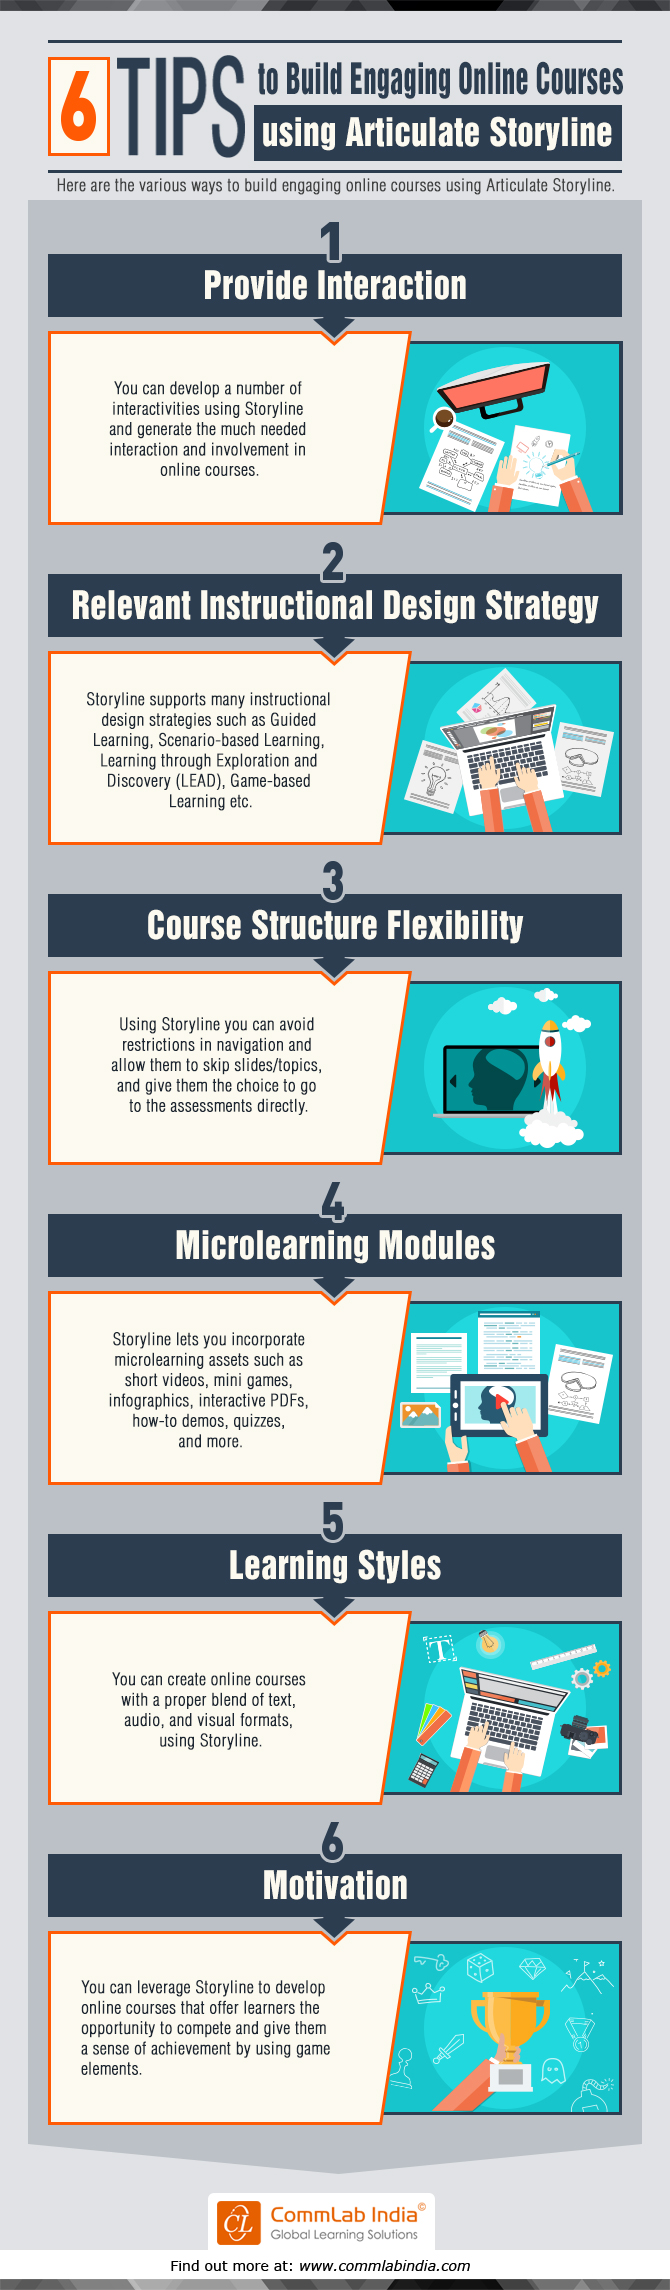 6 Tips to Build Engaging Online Courses using Articulate Storyline [Infographic]